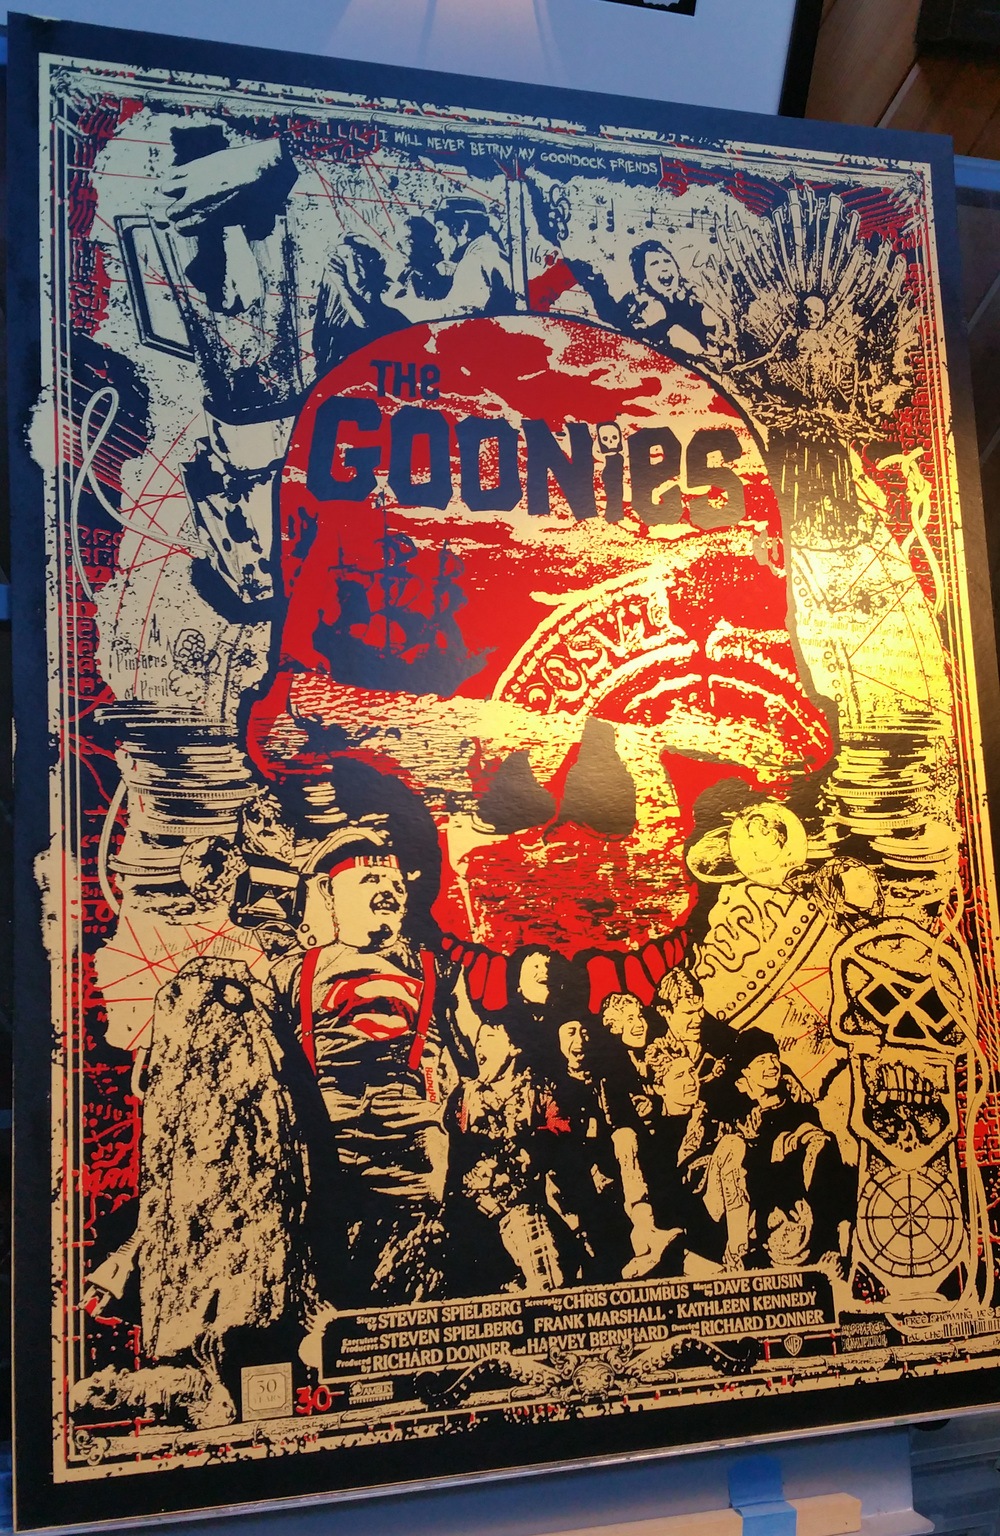 Hey you guys! It's the Goonies poster by Happyface Empire!